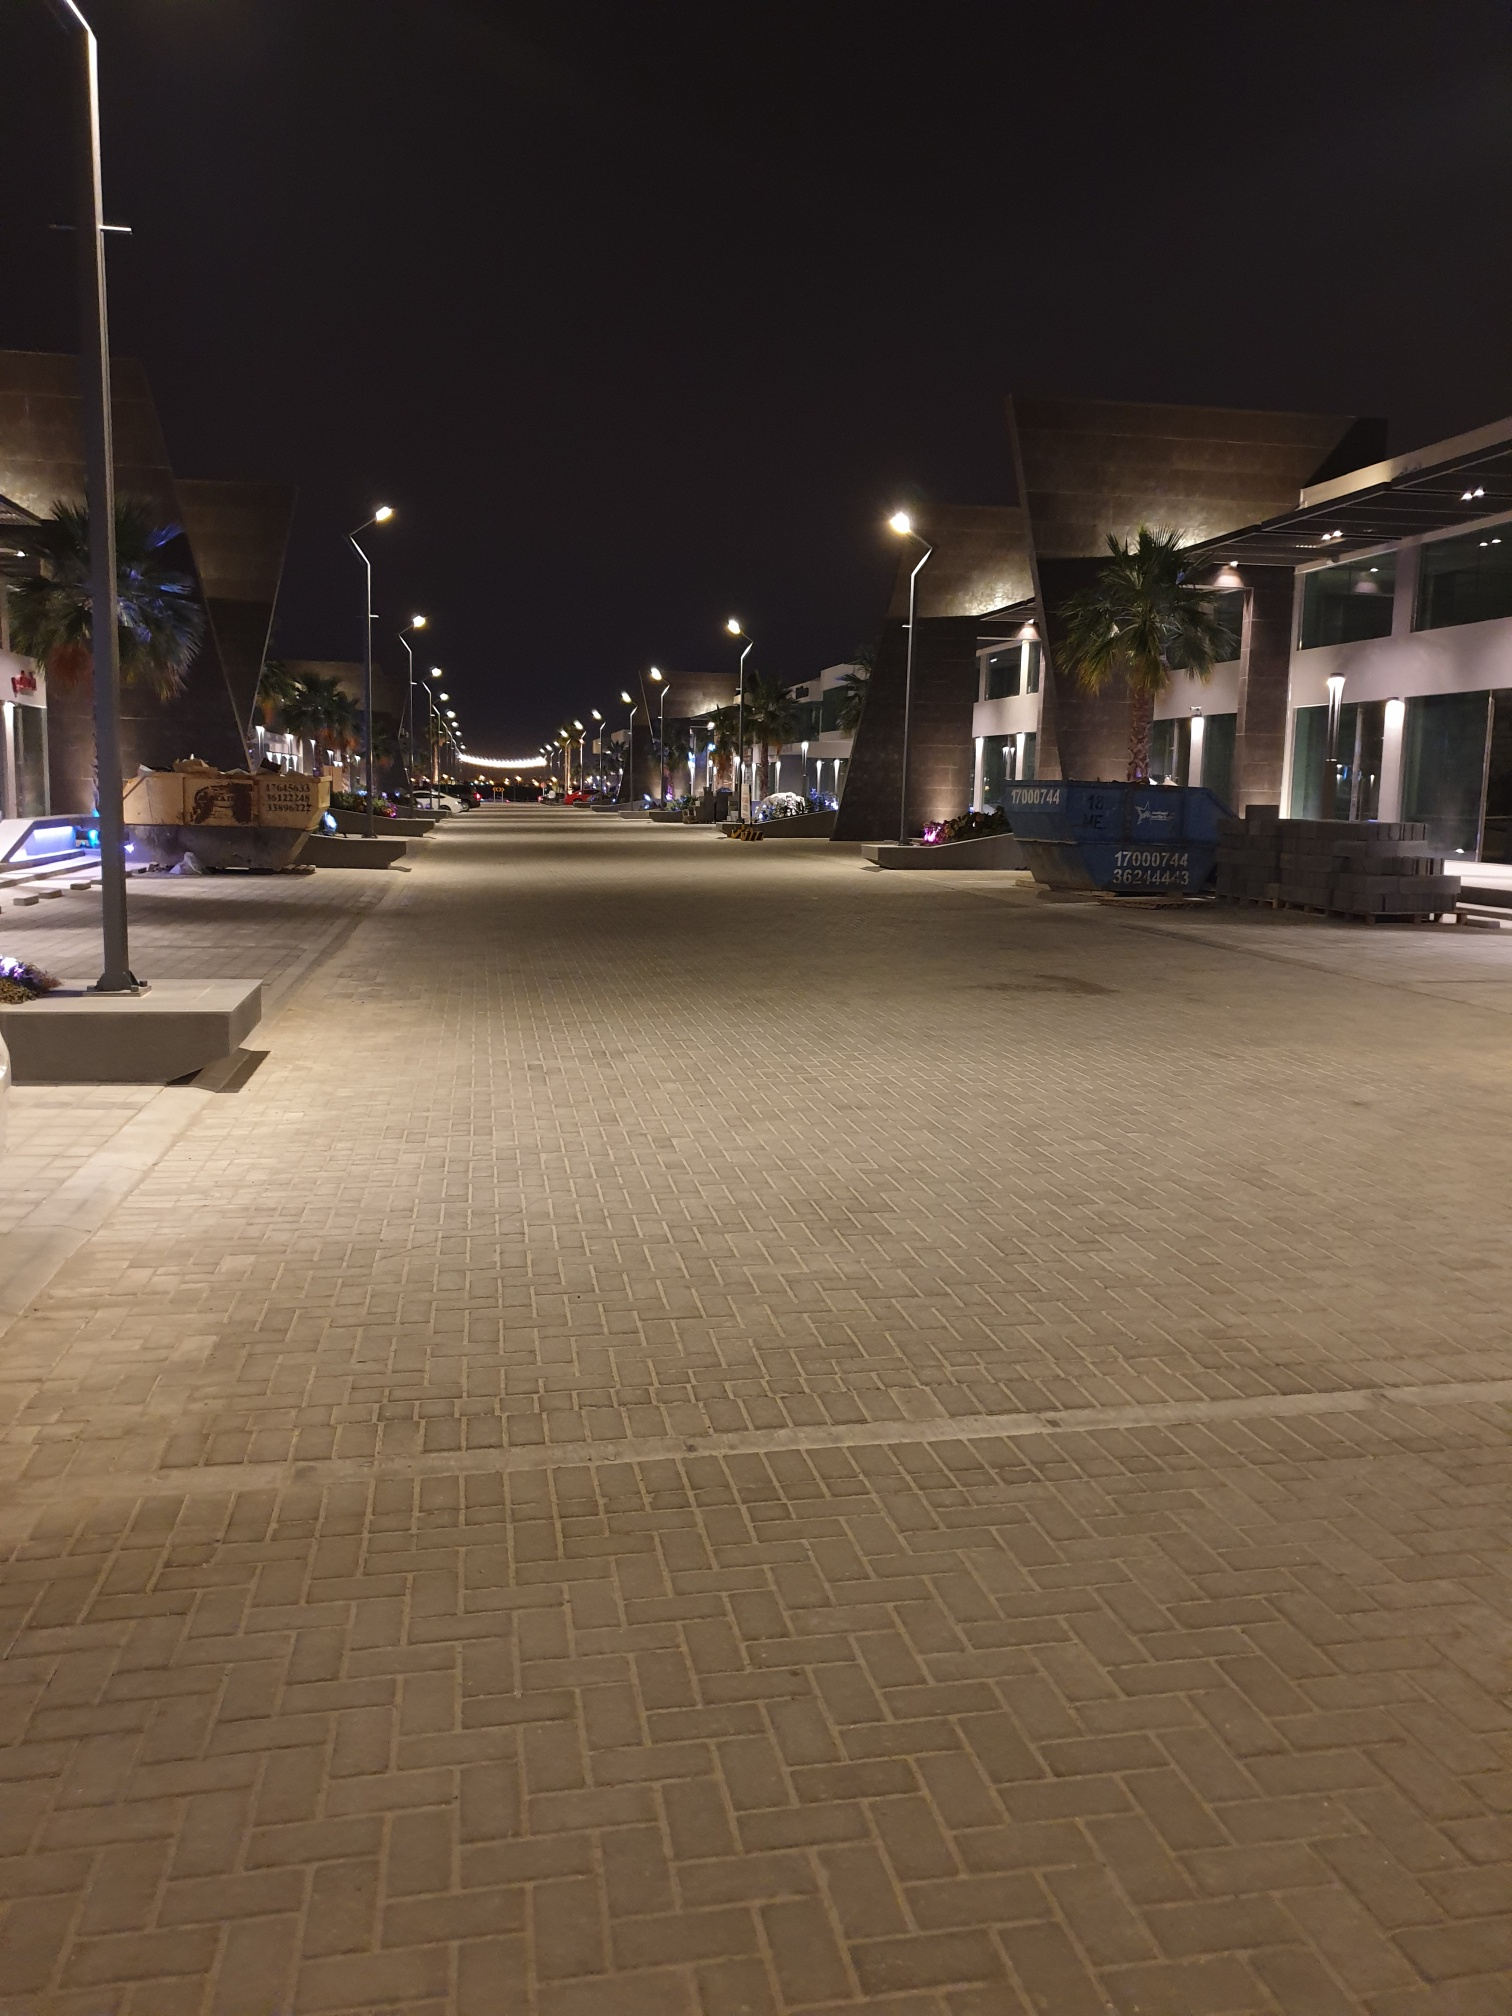 Middle Road Night View